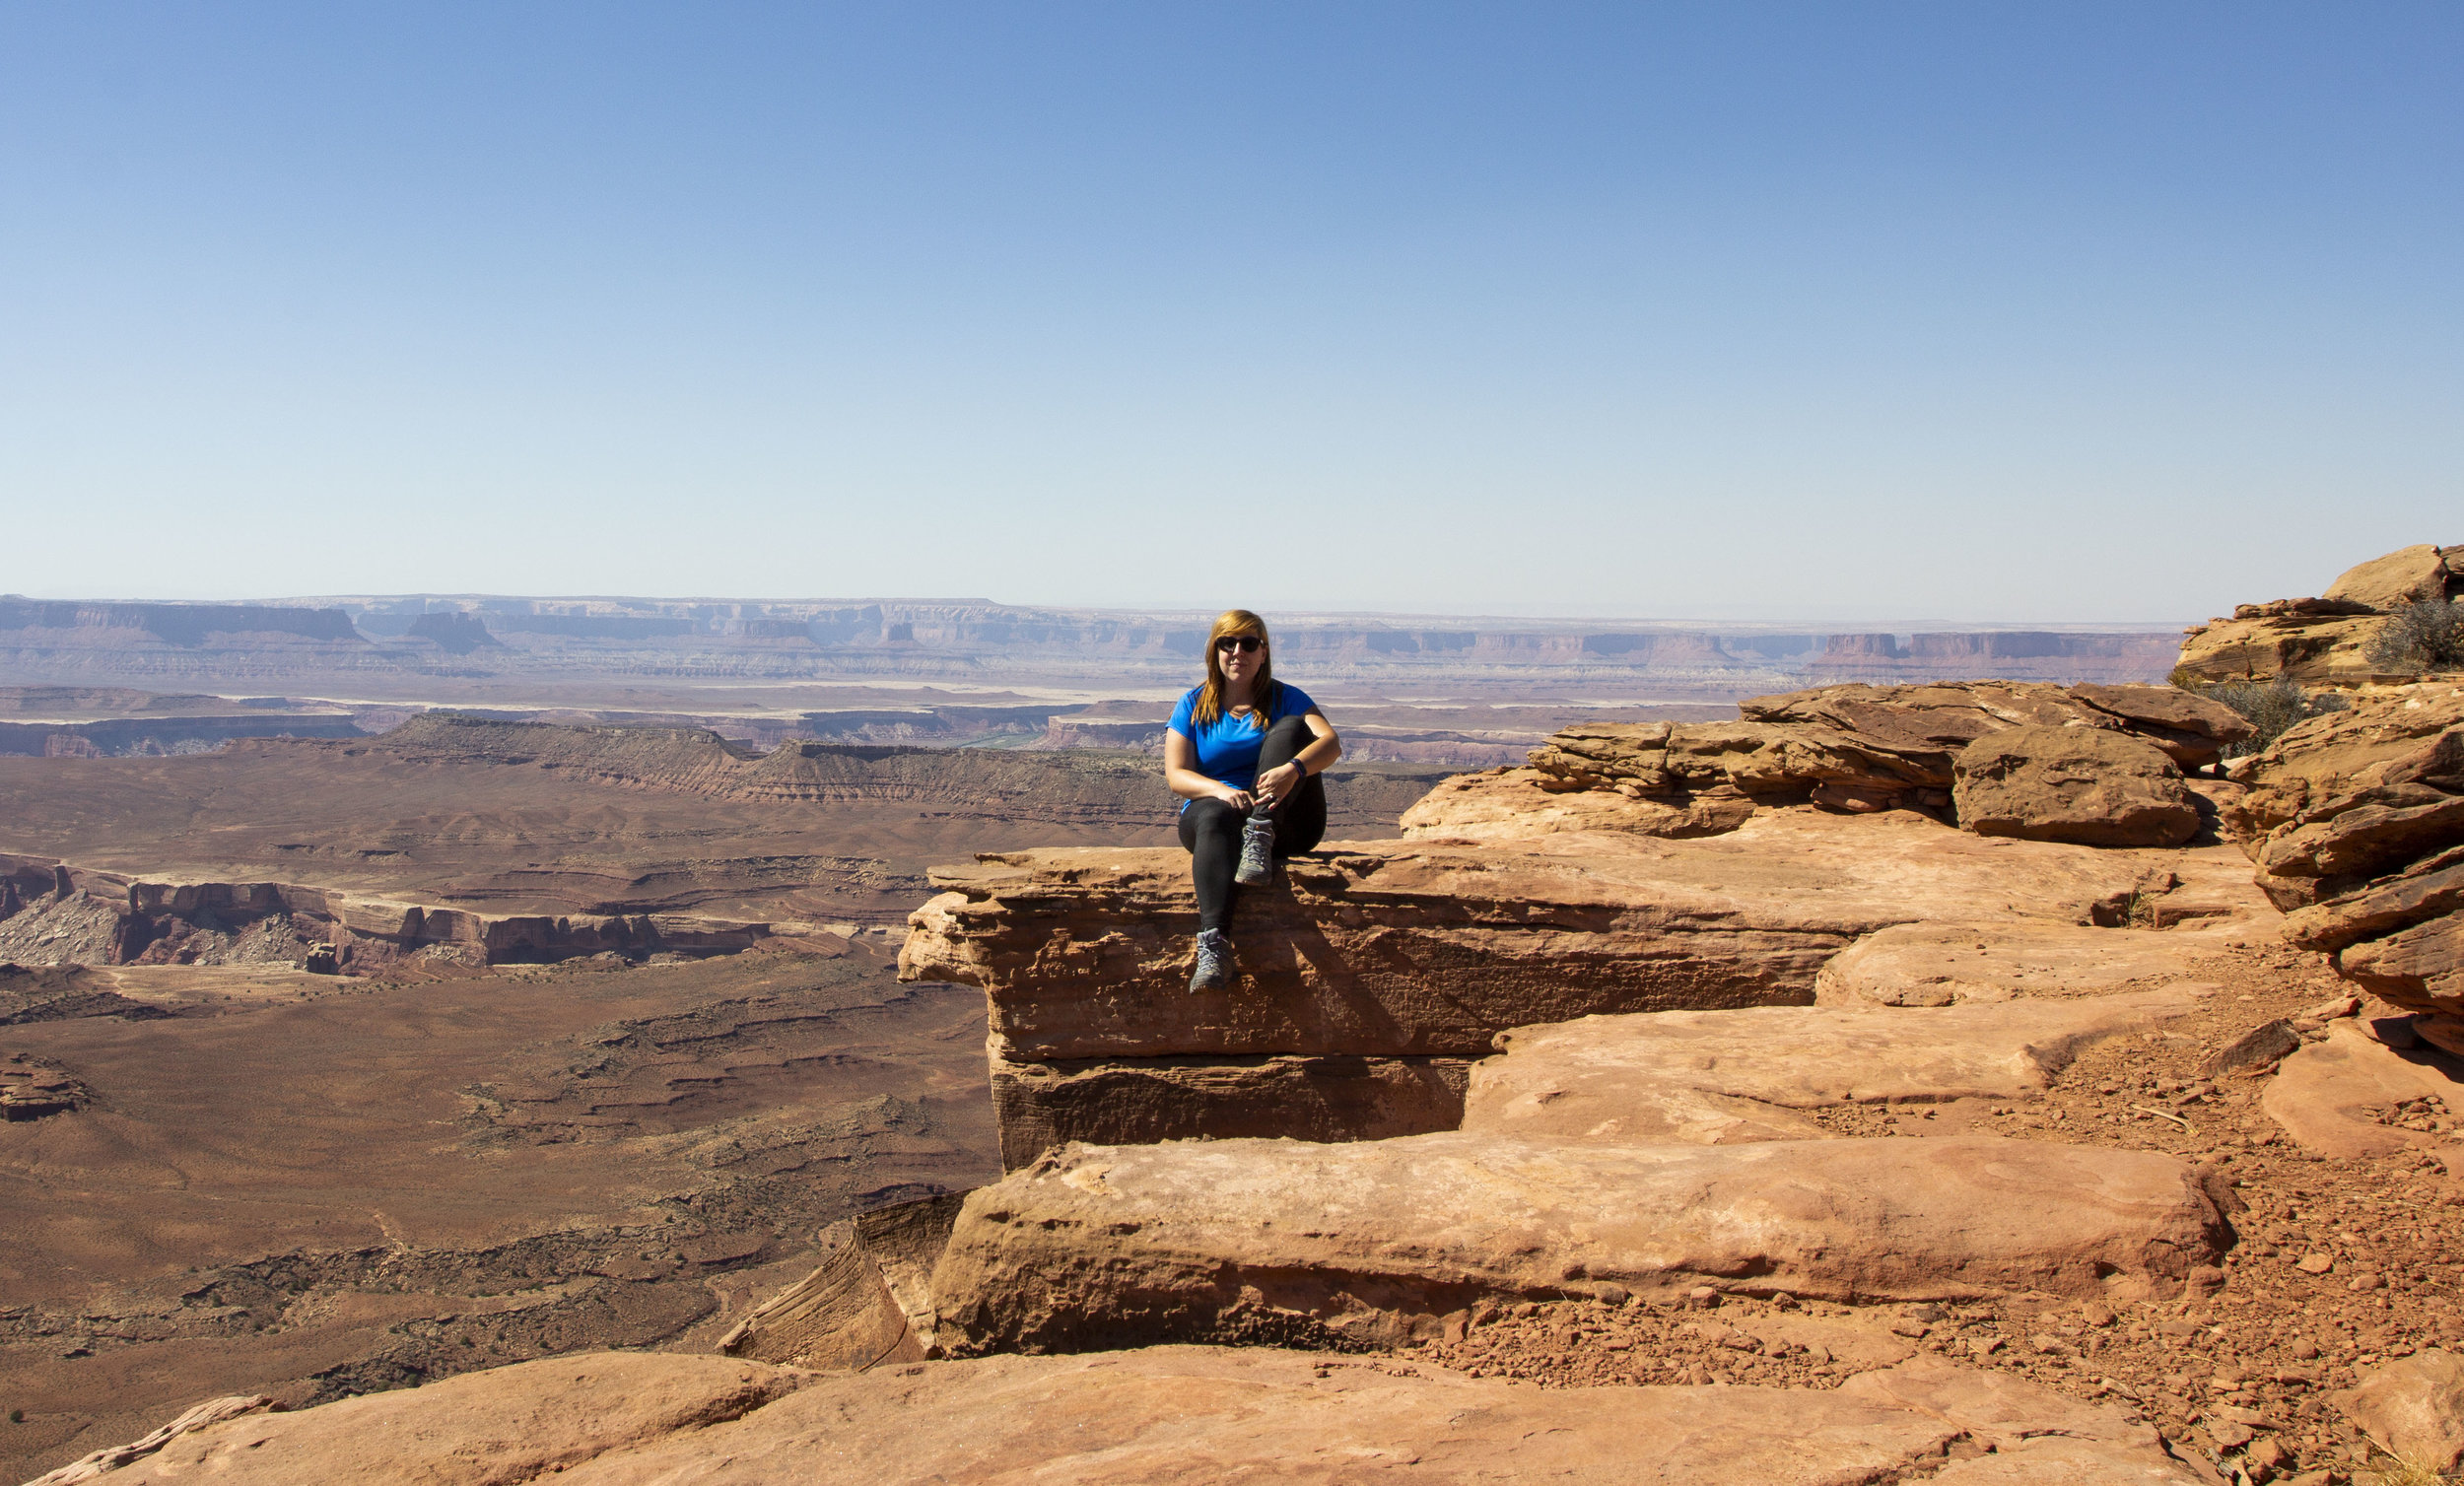 This is me in Canyonlands, halfway through a three week solo road trip that I legitimately could not have mentally or emotionally managed prior to meds. It was awesome. (Epic road trips not guaranteed by meds.)